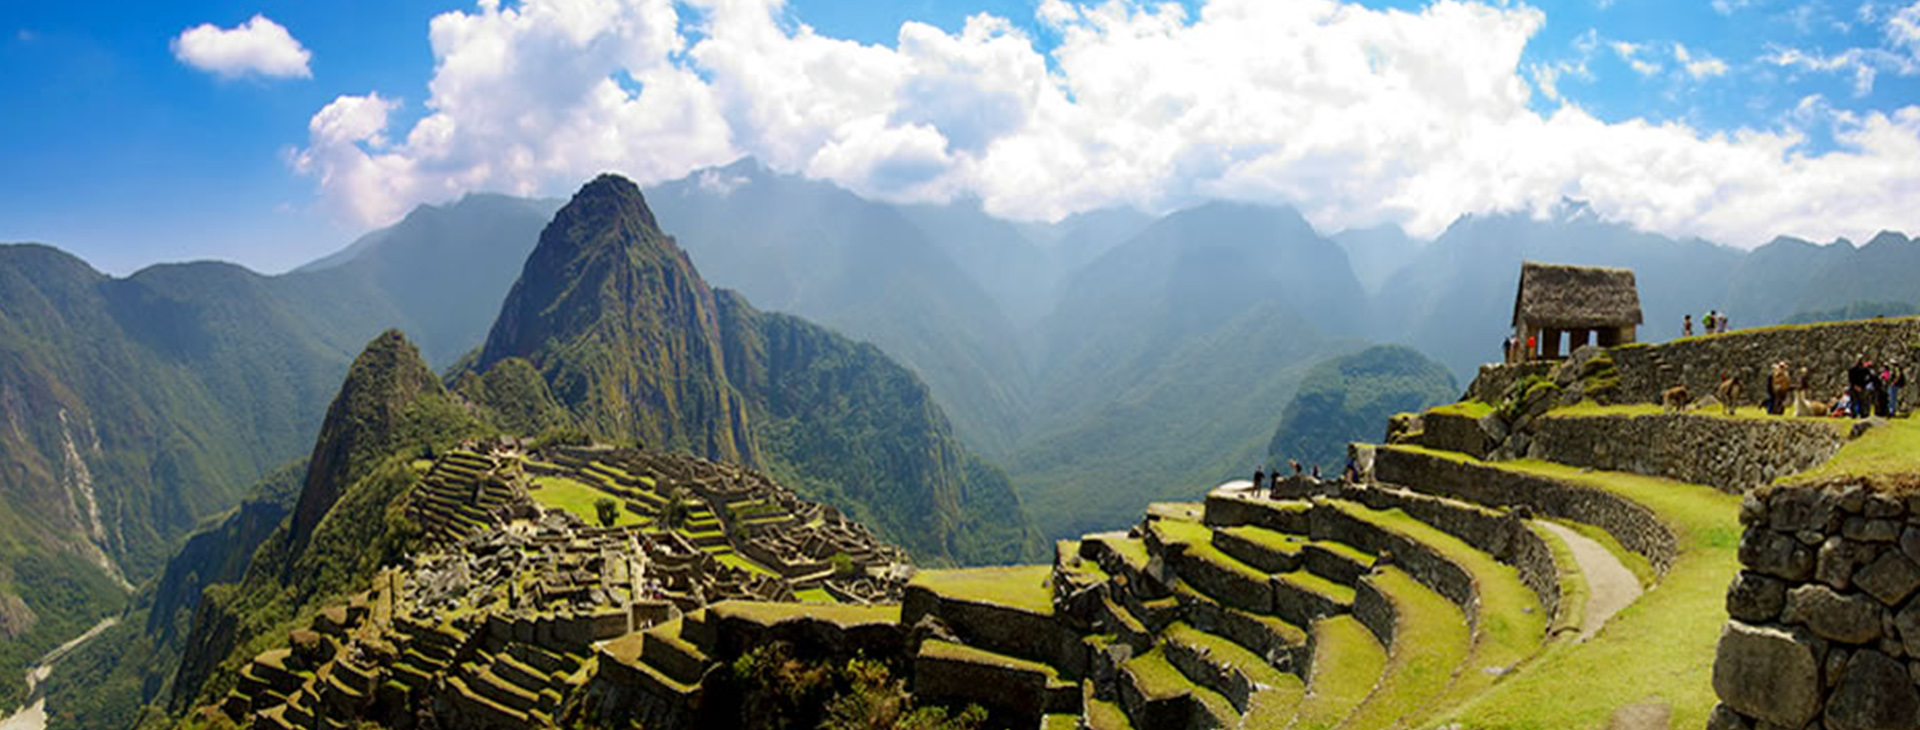 machu picchu tours peru travel 1 dia en tren